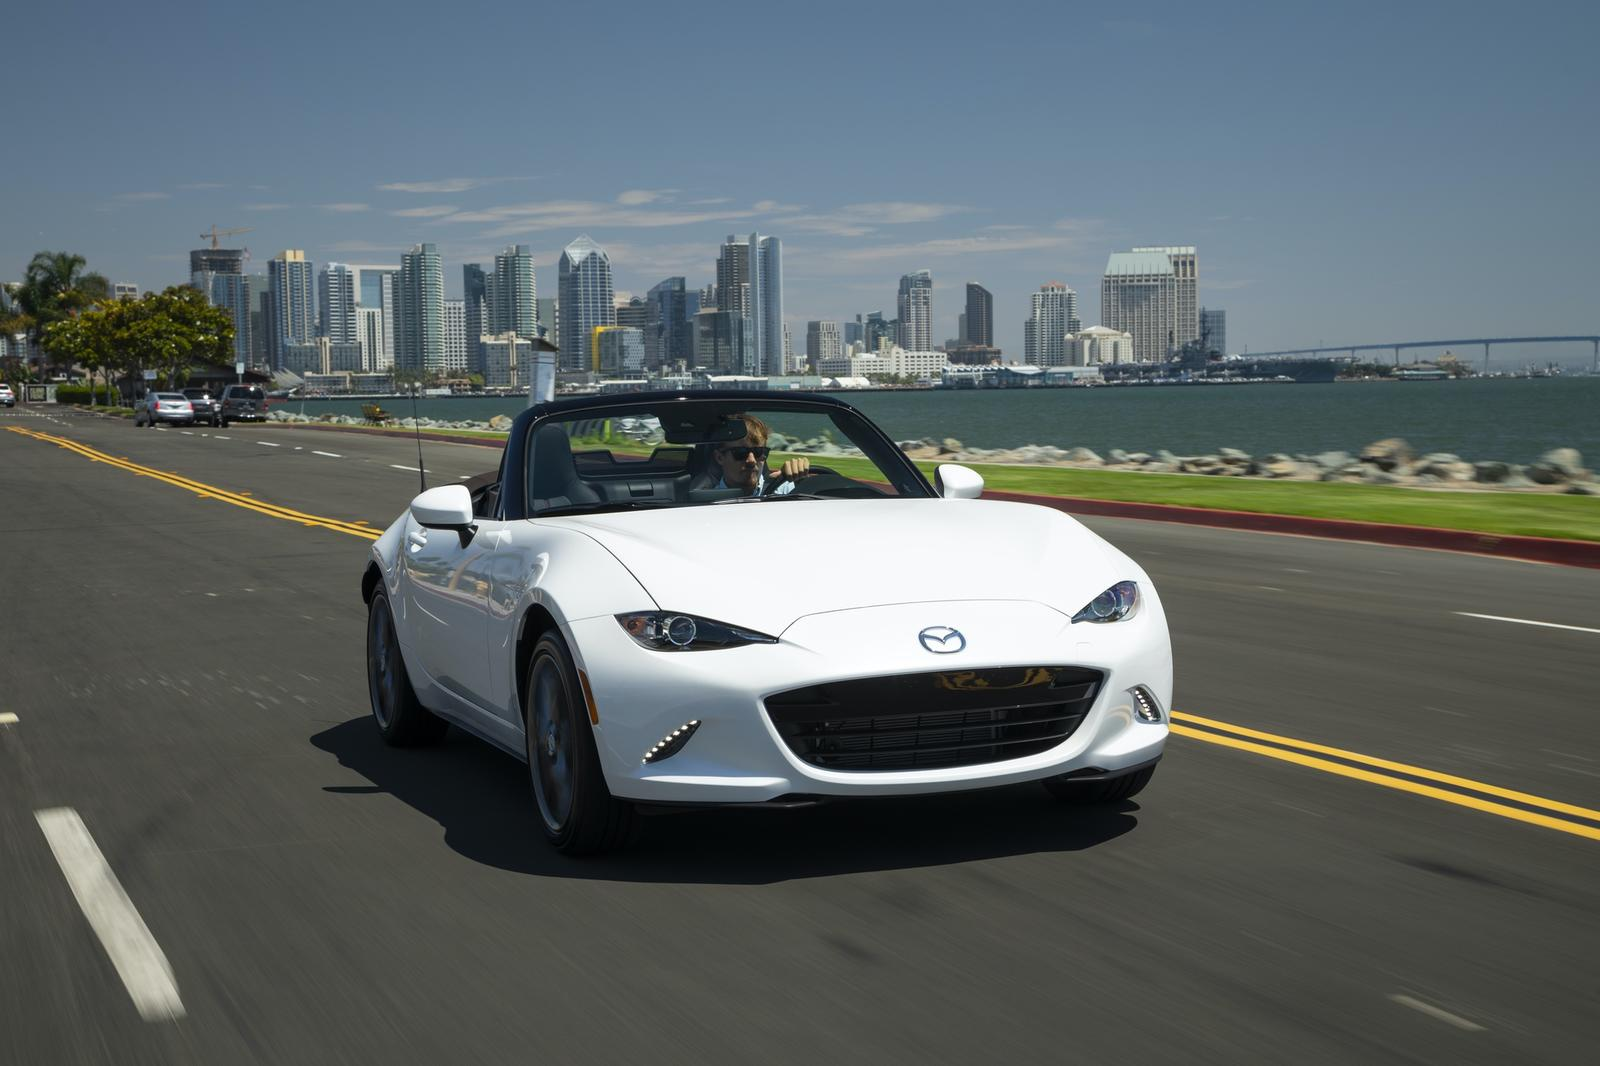 2019 Mazda Mx 5 First Drive The Clic Roadster Changes In A Major Way